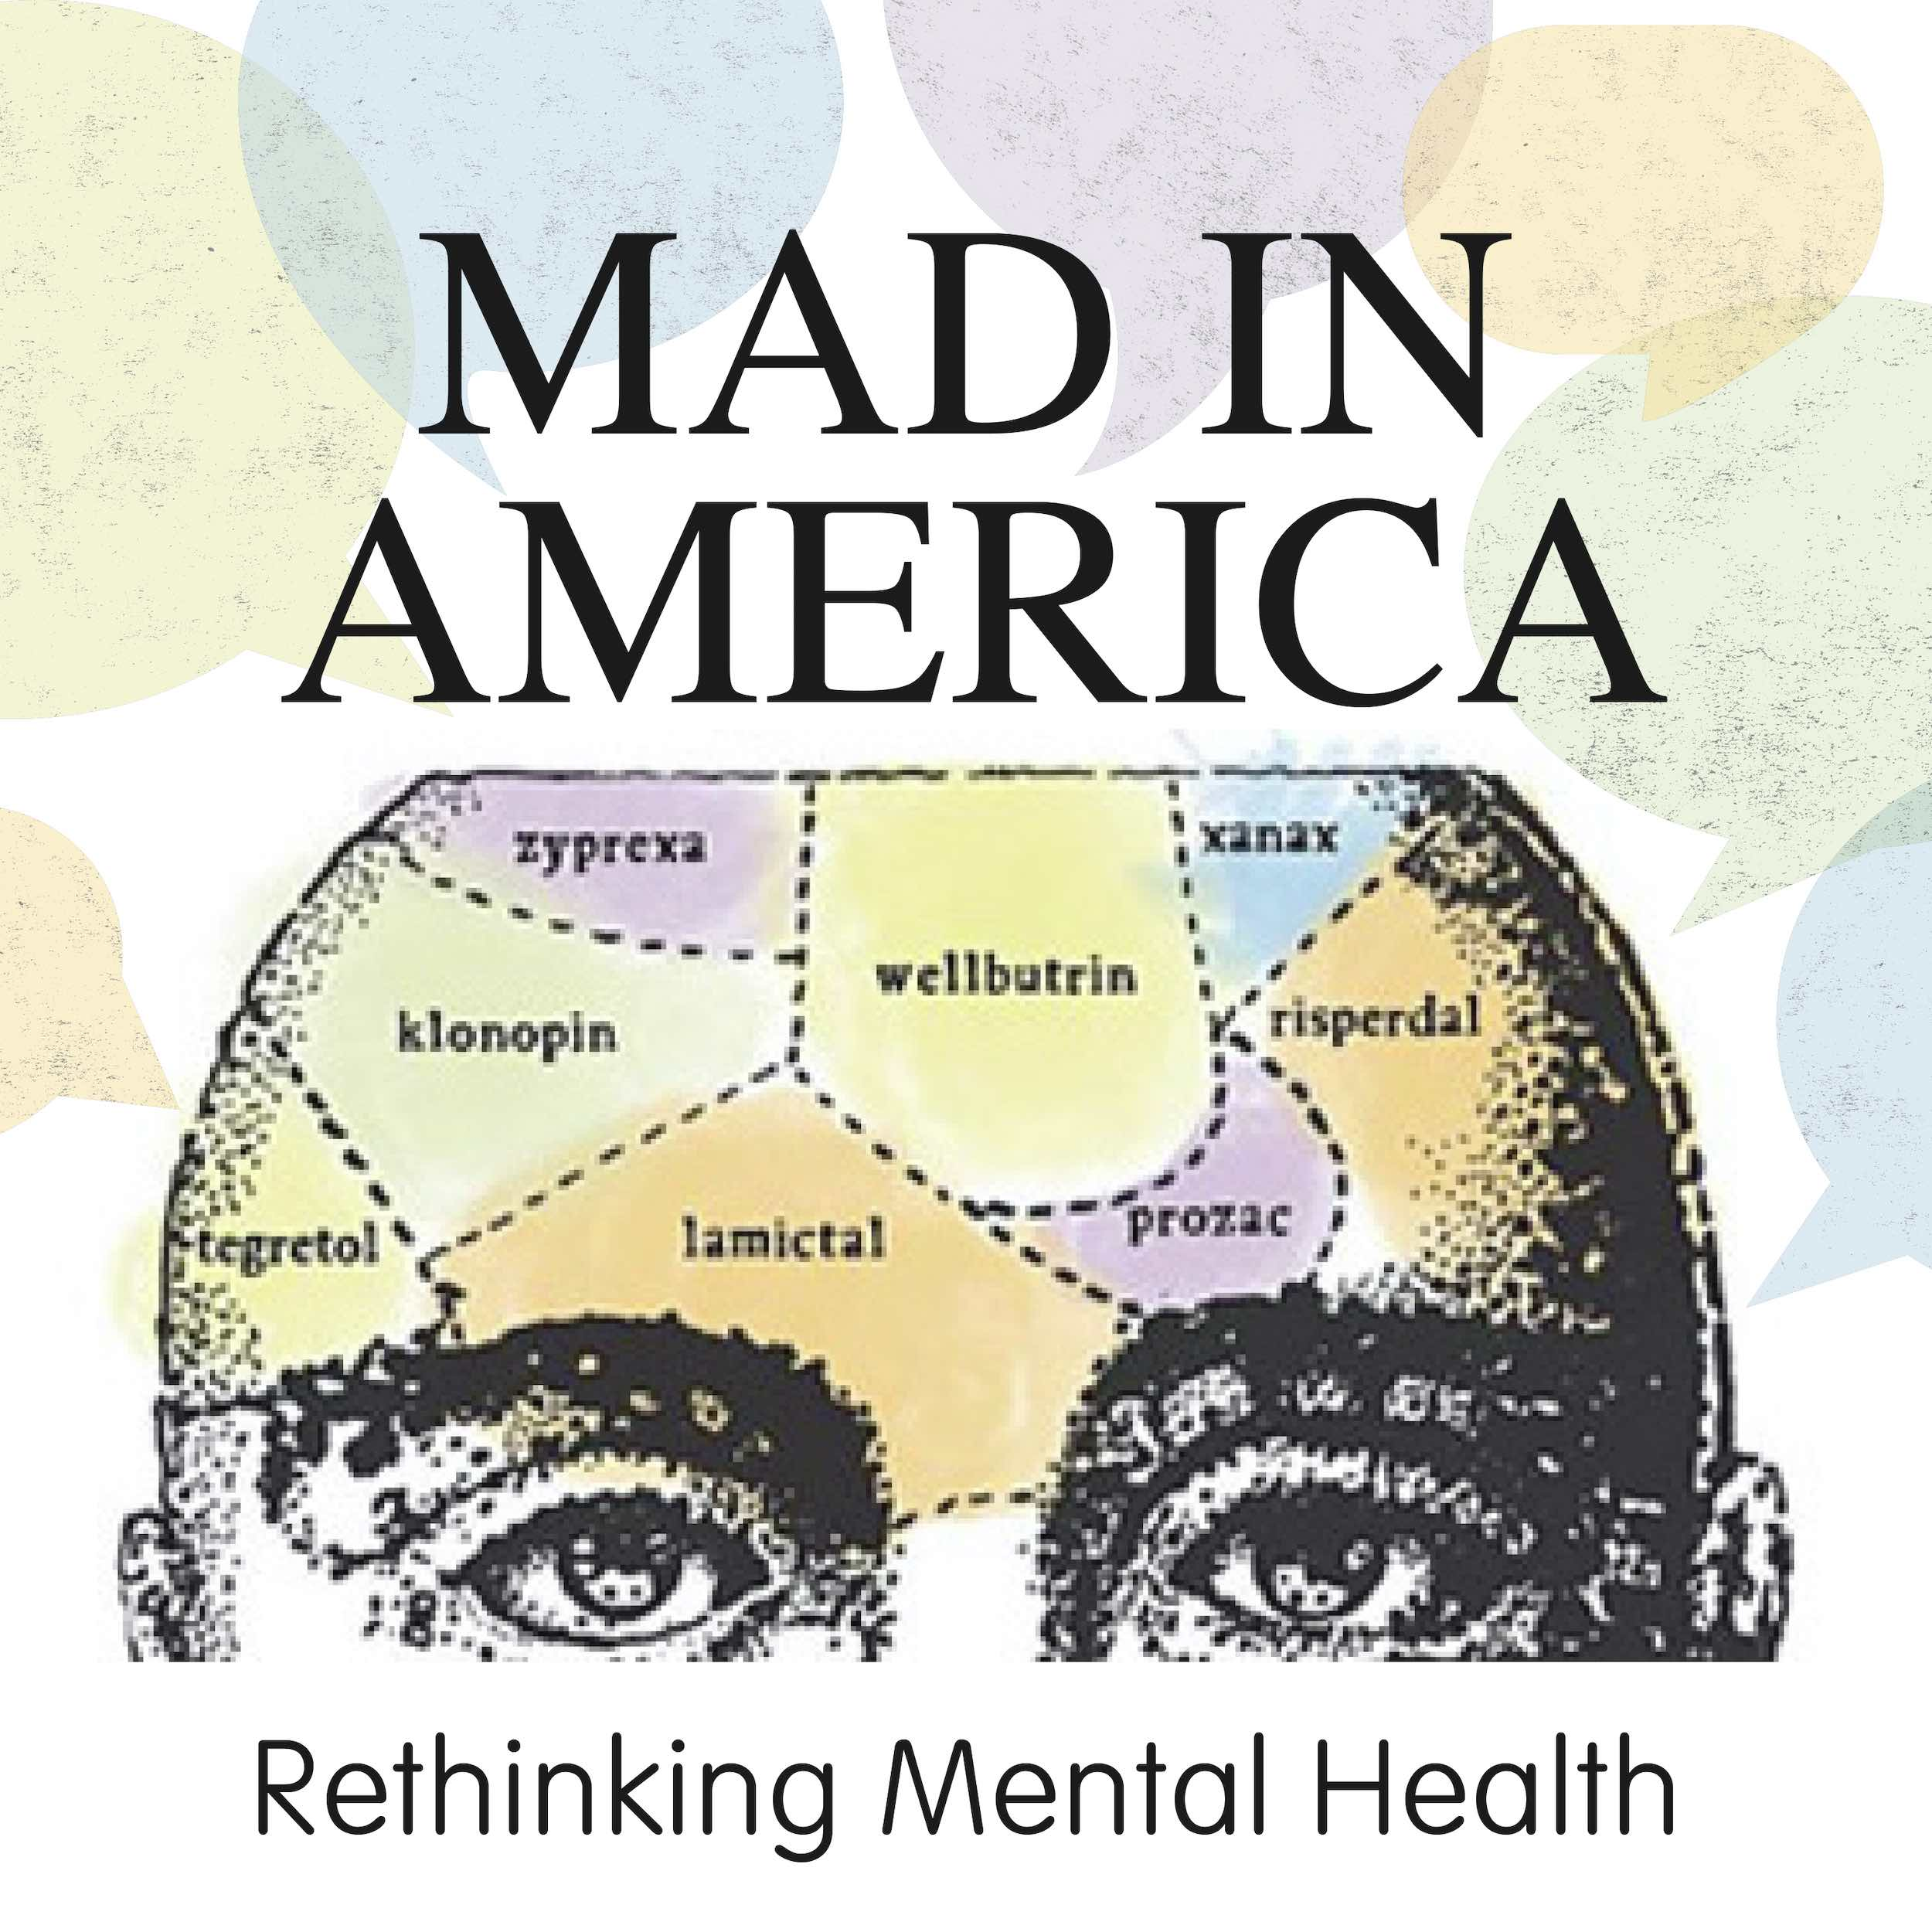 Mad in America: Rethinking Mental Health - Peter Breggin and Michael Cornwall - Stop the Psychiatric Abuse of Children